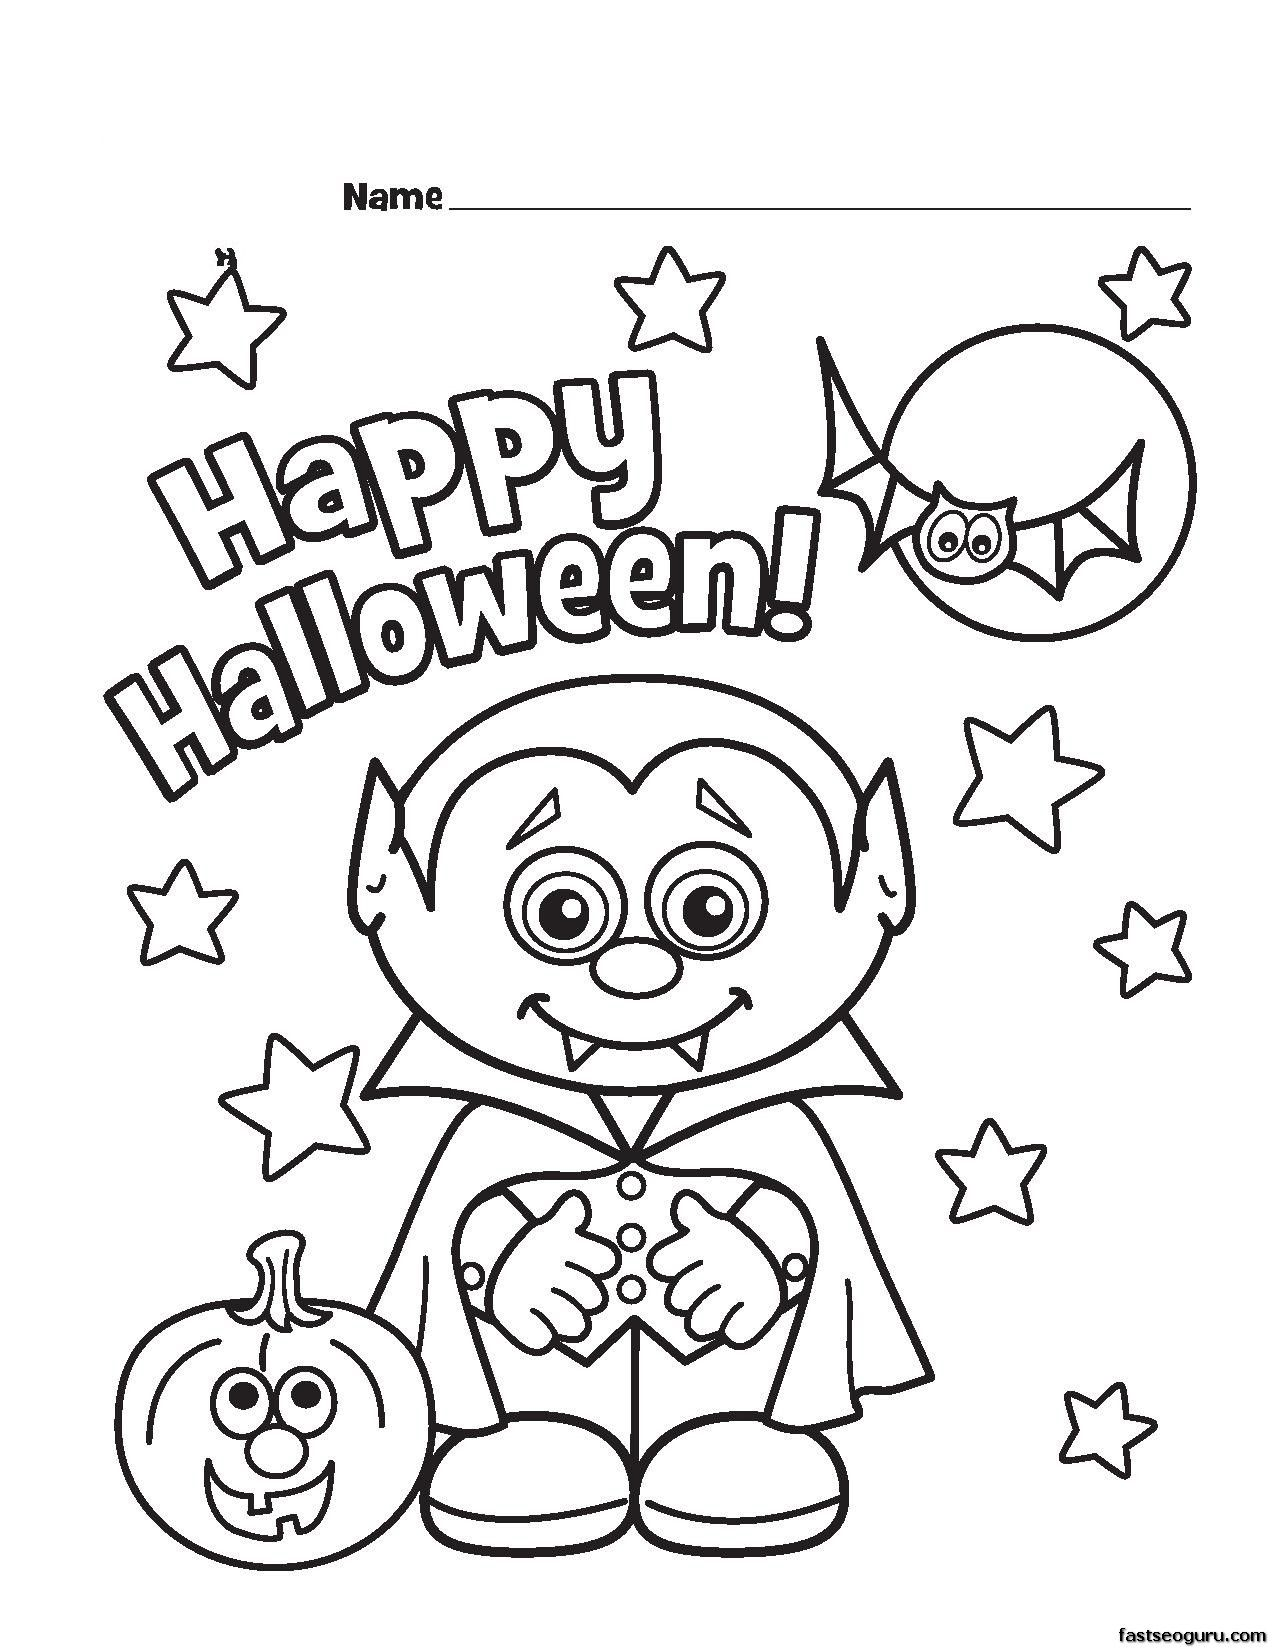 Free coloring pages for halloween - Halloween Vampire Coloring Pages Czfv Jpg 1275 1650